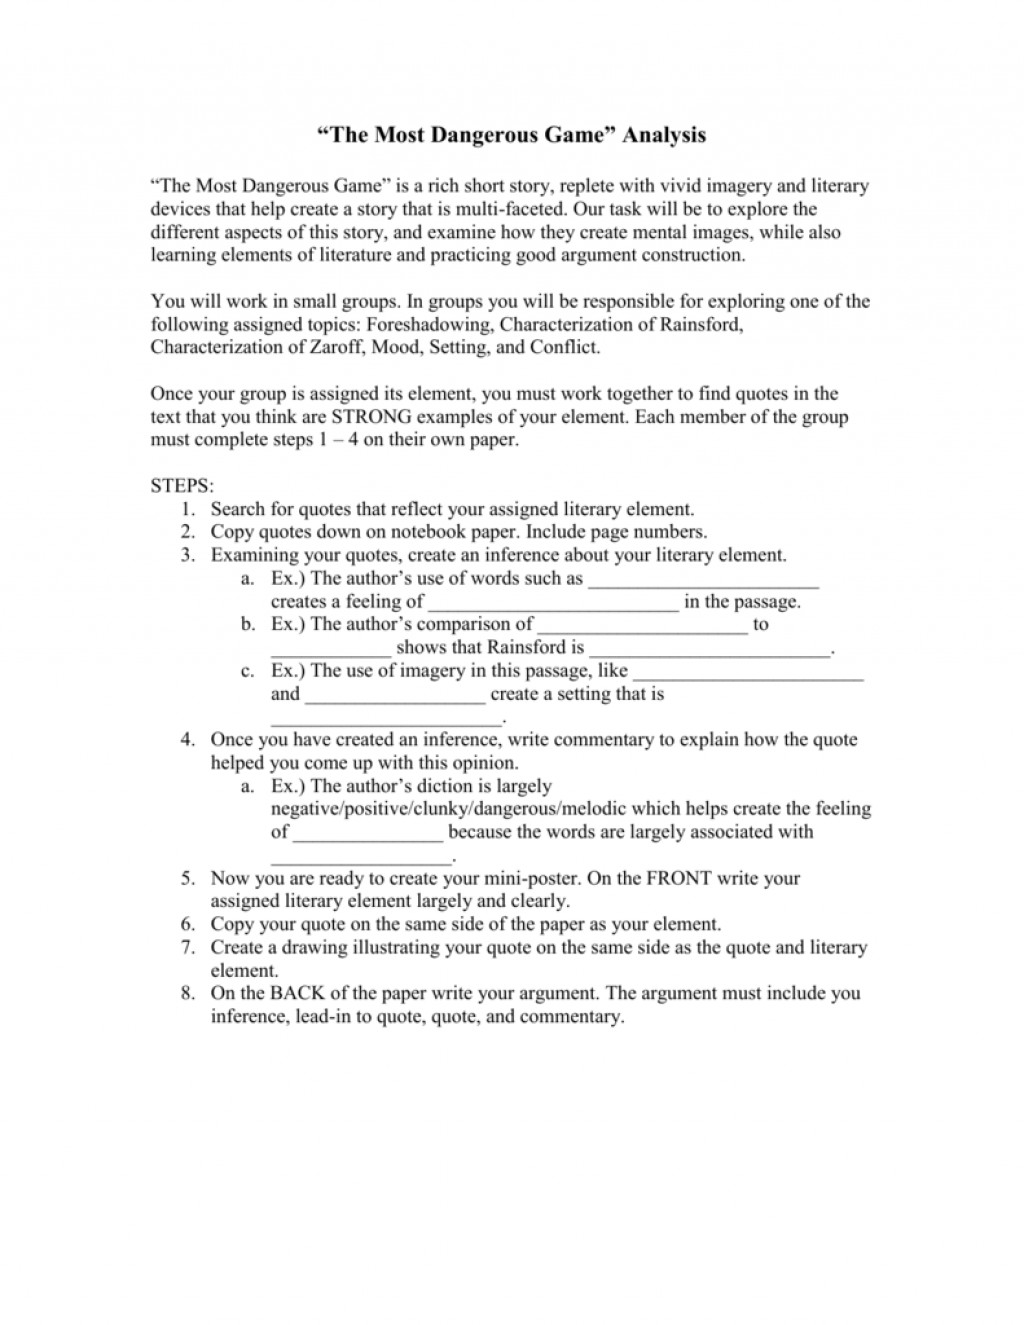 009 Essay Example 008016662 1 The Most Dangerous Impressive Game Study Questions And Answers Discussion Large